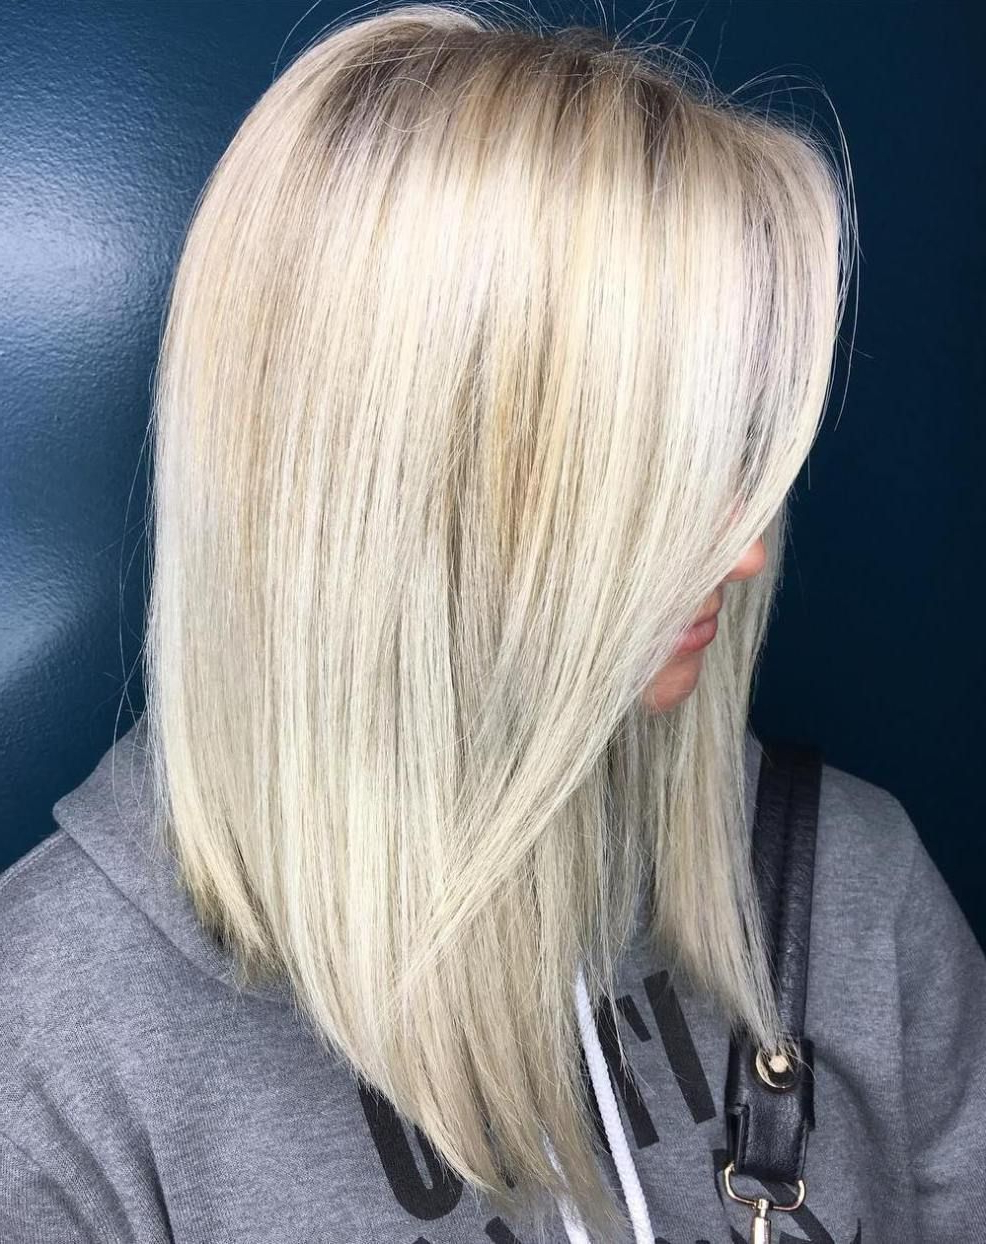 40 Styles With Medium Blonde Hair For Major Inspiration Regarding Modern And Stylish Blonde Bob Haircuts (View 2 of 20)